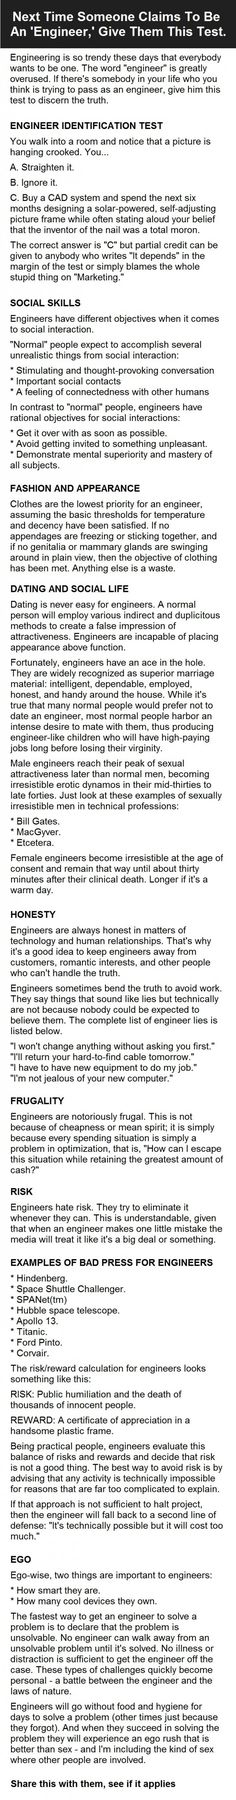 Engineer test... This is great :)